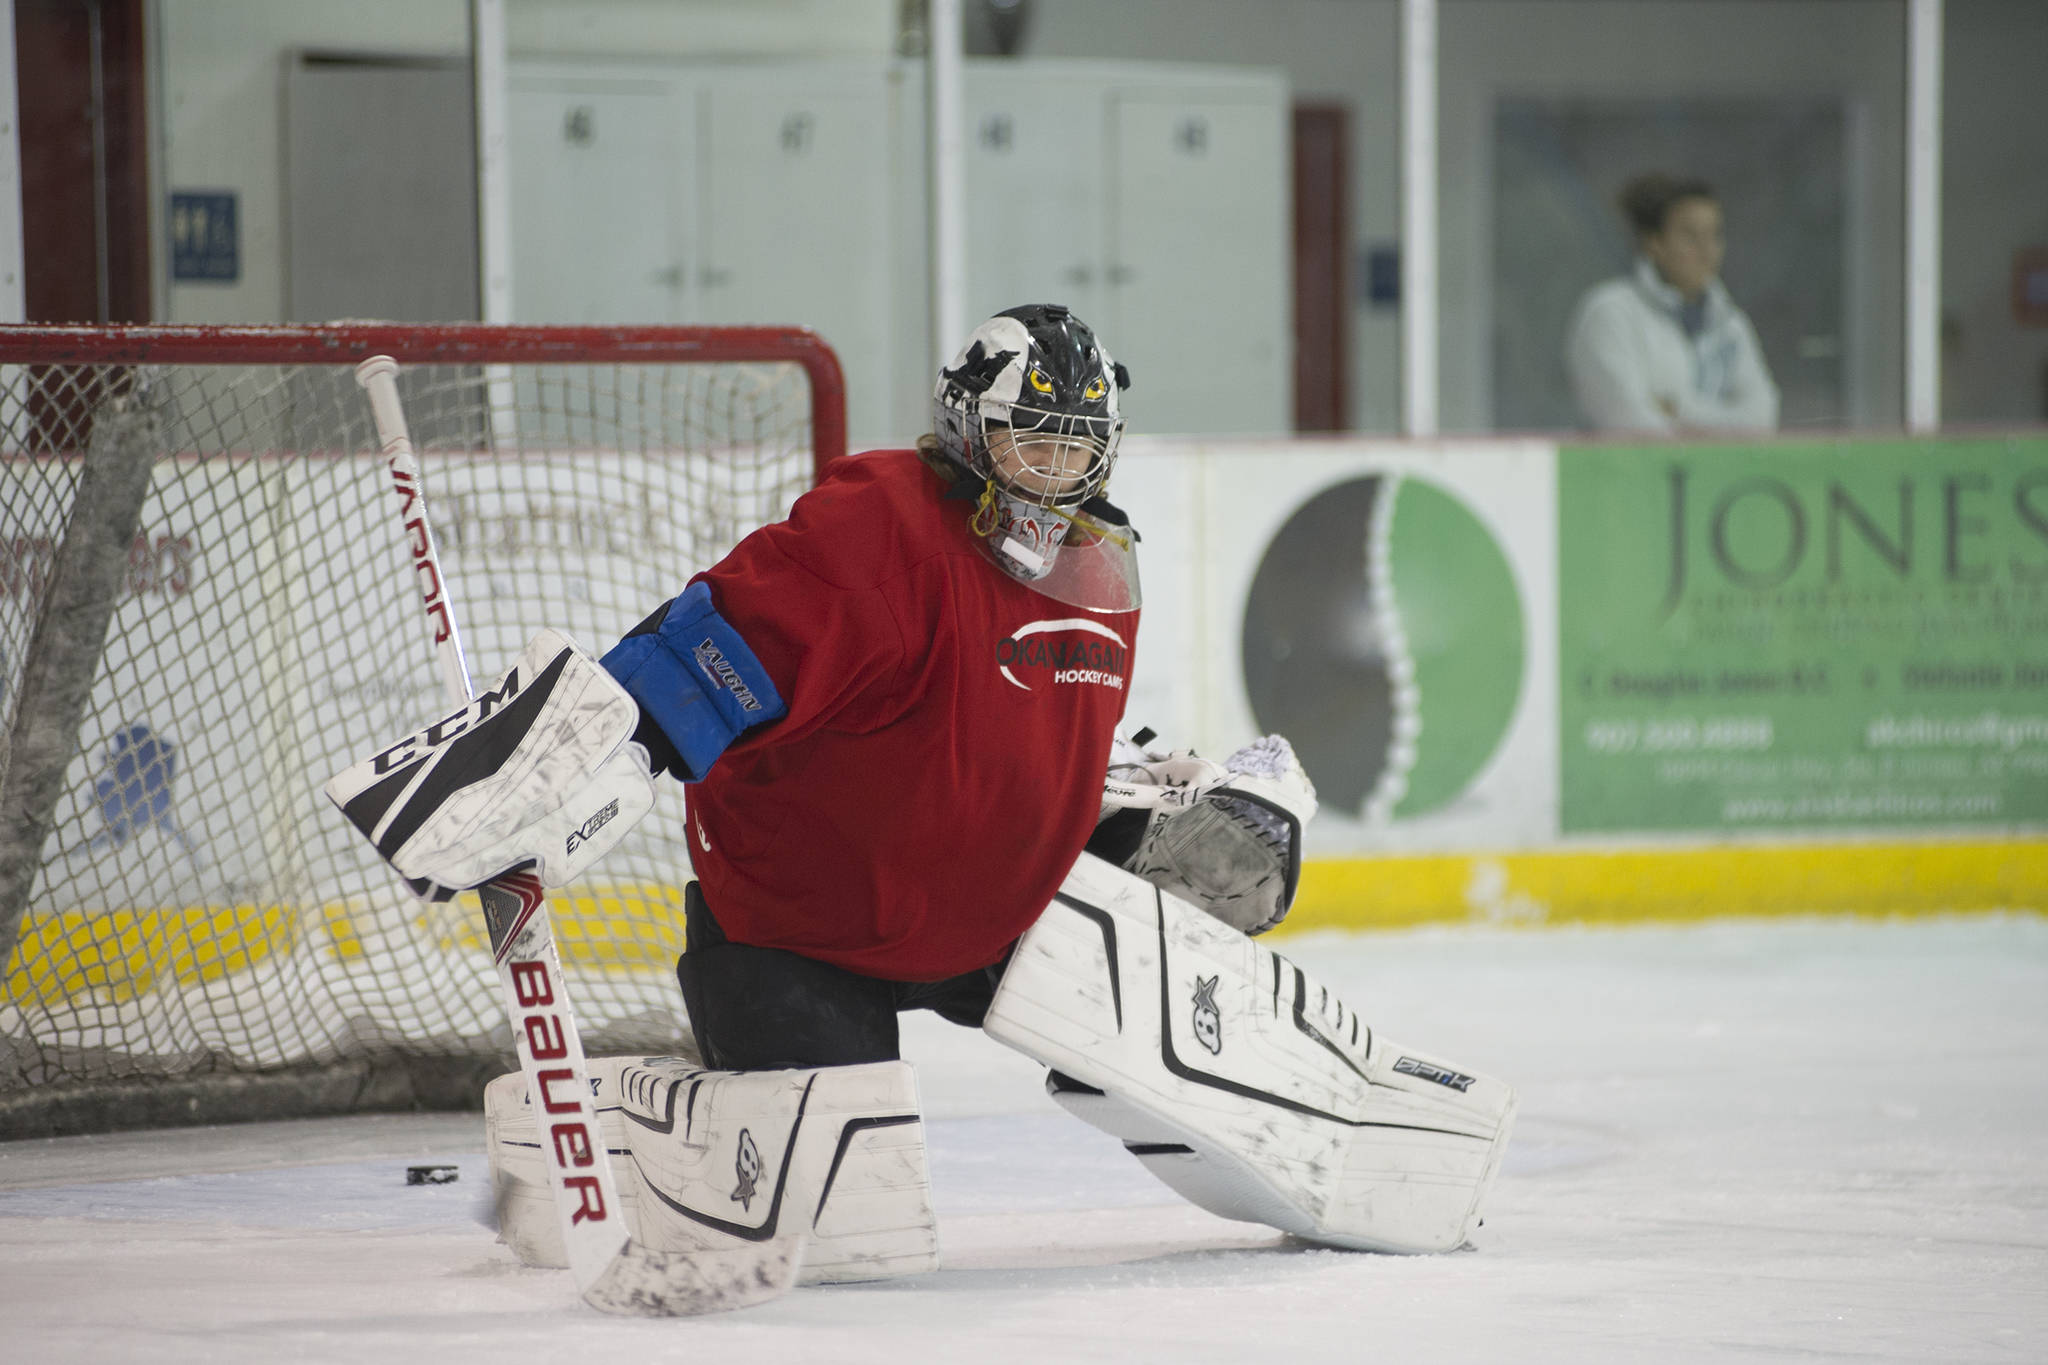 Juneau-Douglas High School senior Wolf Dostal turns aside a shot during hockey practice on Wednesday morning at Treadwell Arena. Dostal is one of three returning goaltenders on the team this season. (Nolin Ainsworth   Juneau Empire)